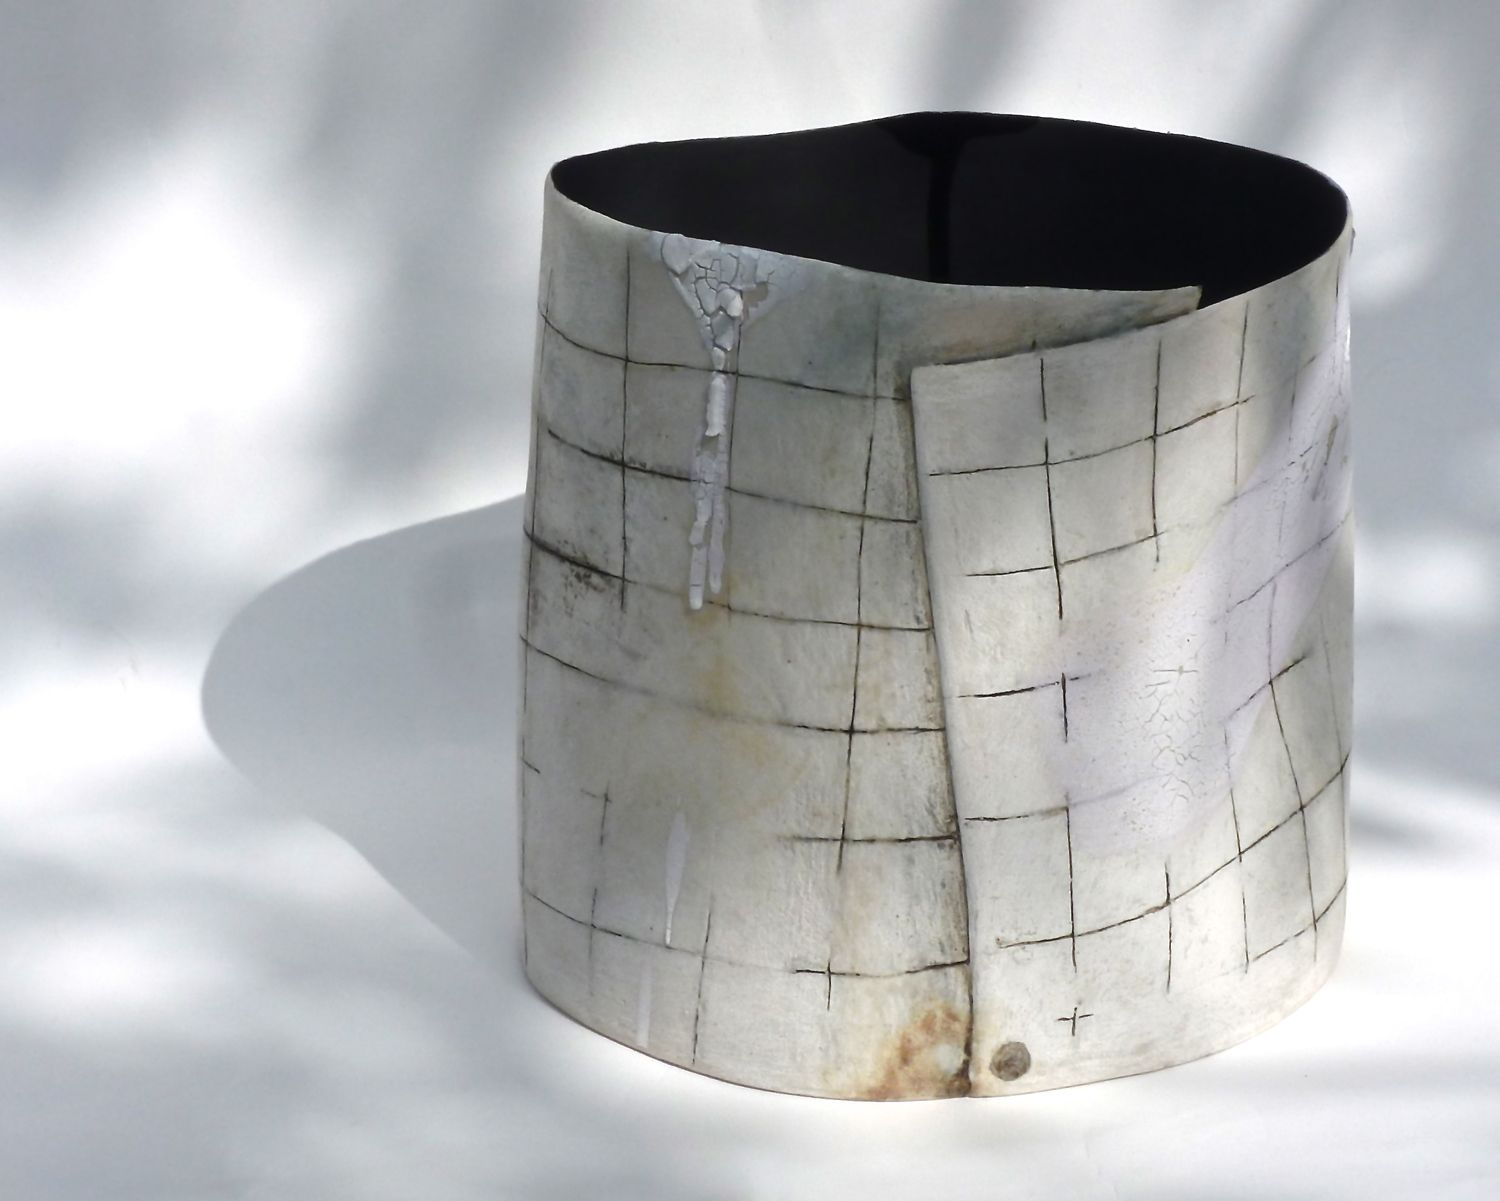 Hilary Mayo Ceramics, Stoneware vessel: mark making with hand brushed layers of glazes and oxides